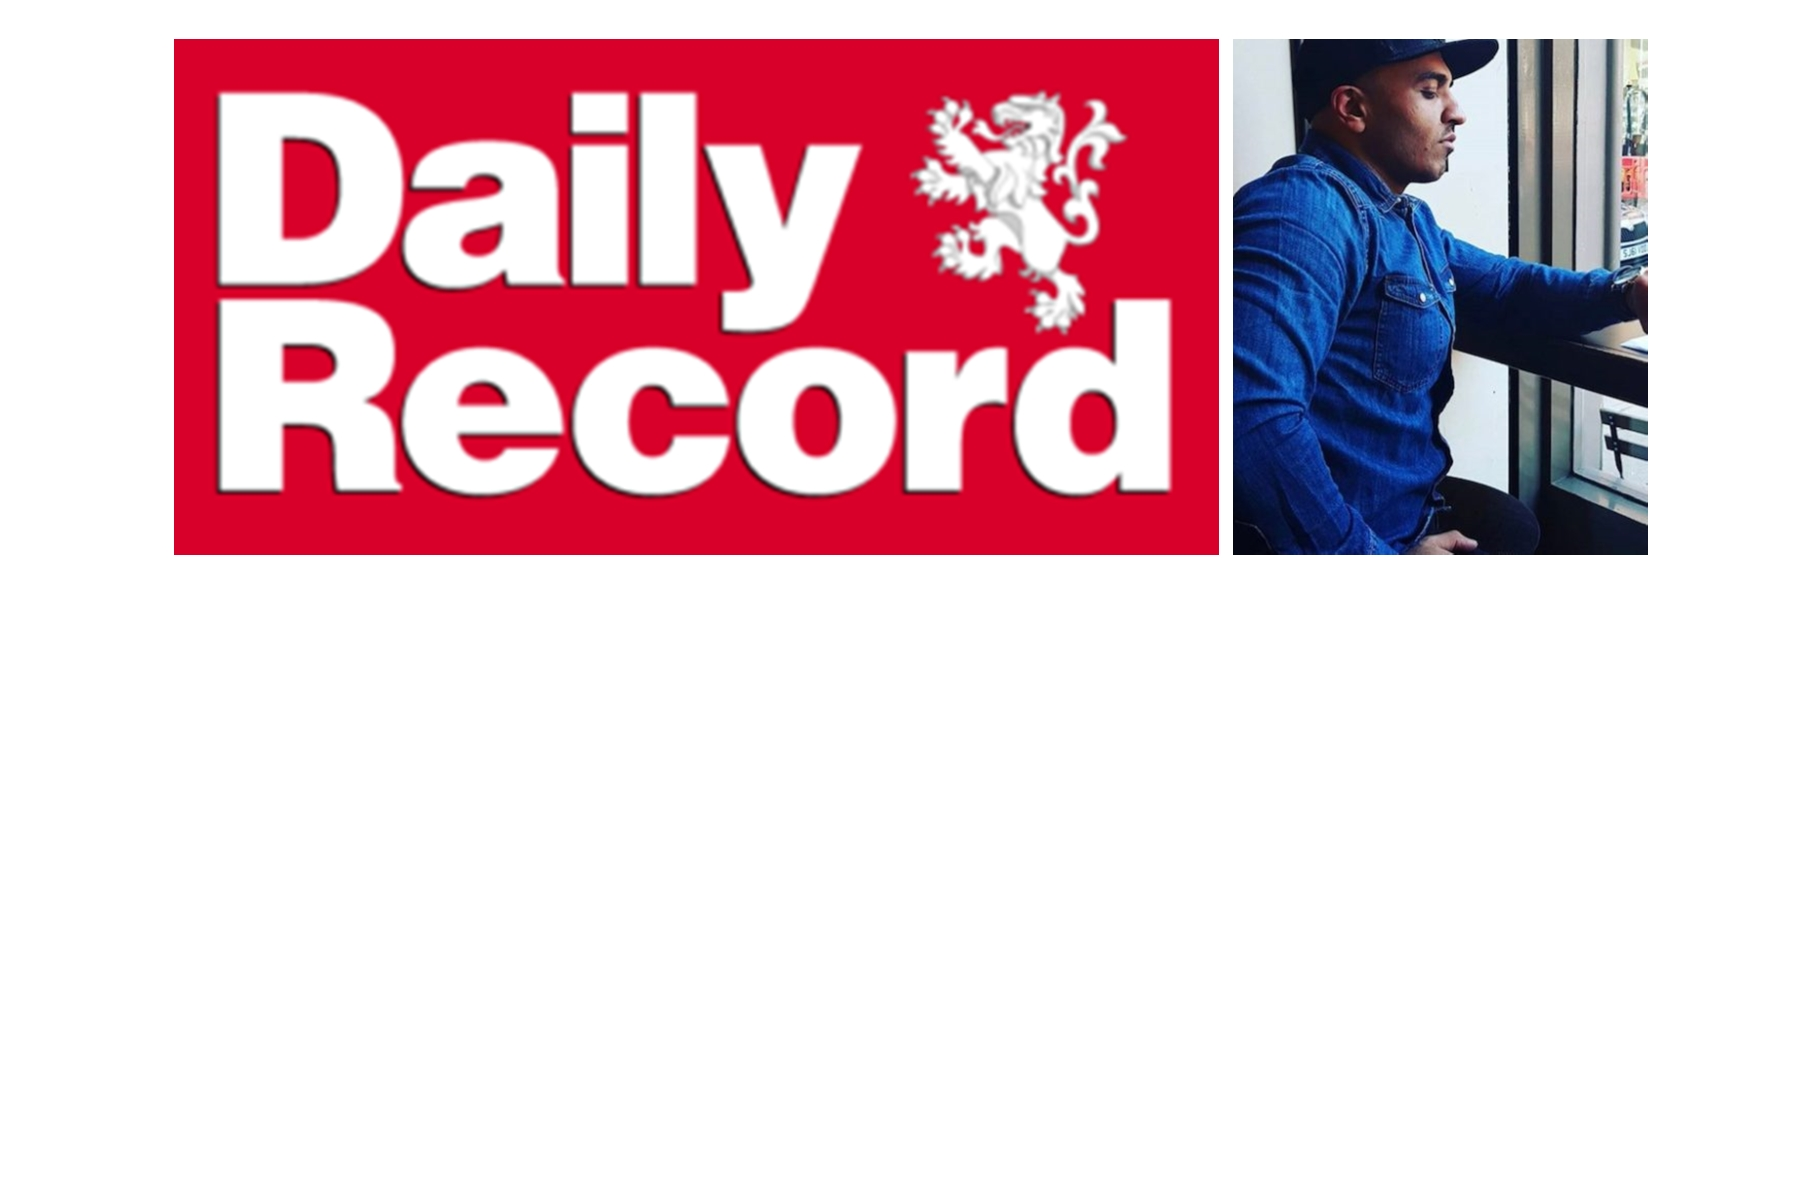 The Daily Record Regurgitate Lies About Adnan Ahmed by Recycling Fake Charges Listed in Other Sham Media